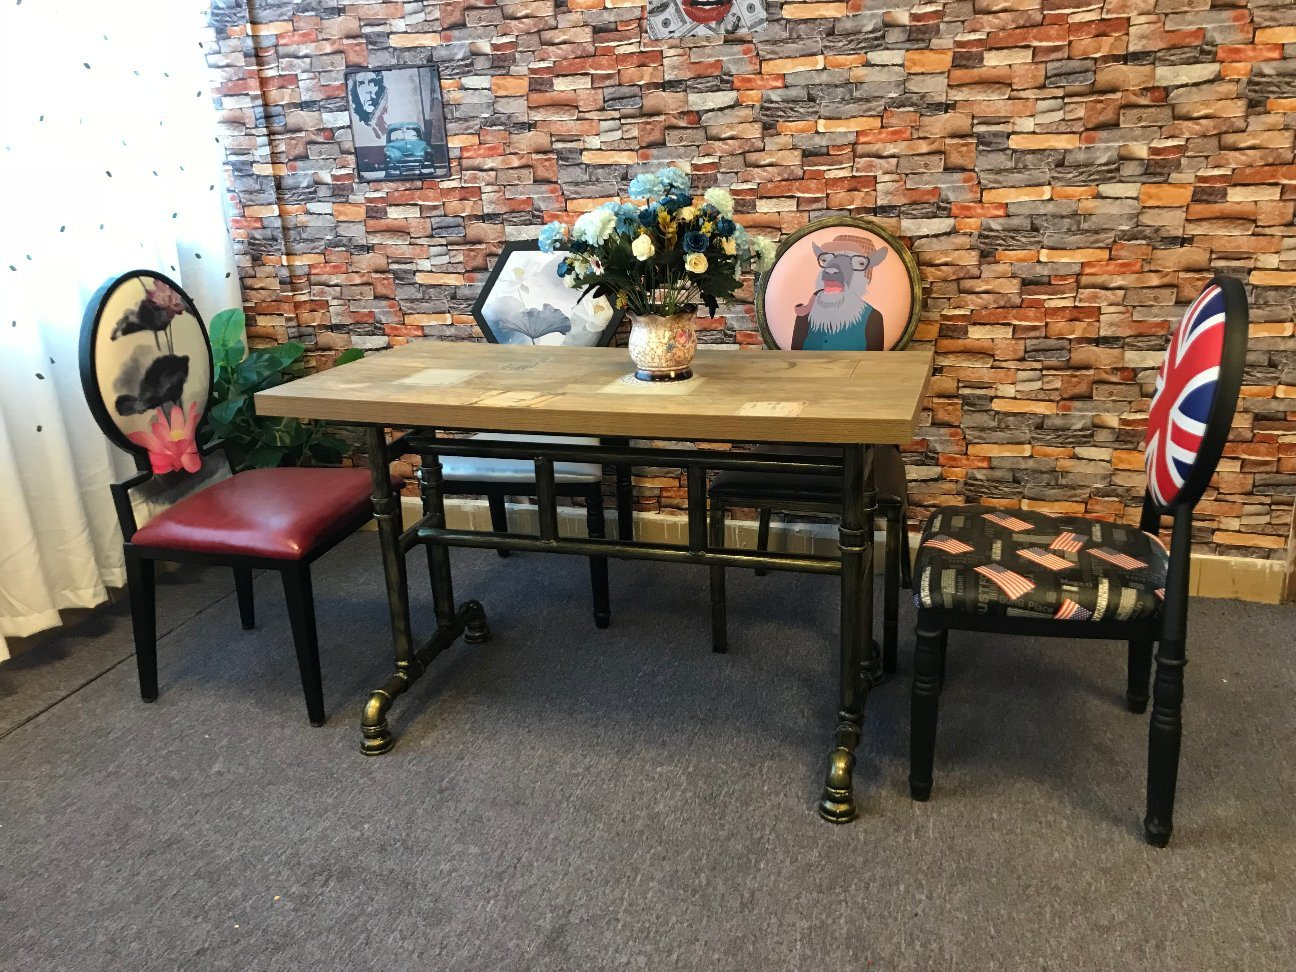 China American Industrial Style Water Pipe Design Iron Restaurant Dining Table Chair Sets China Dining Table Wooden Board Table